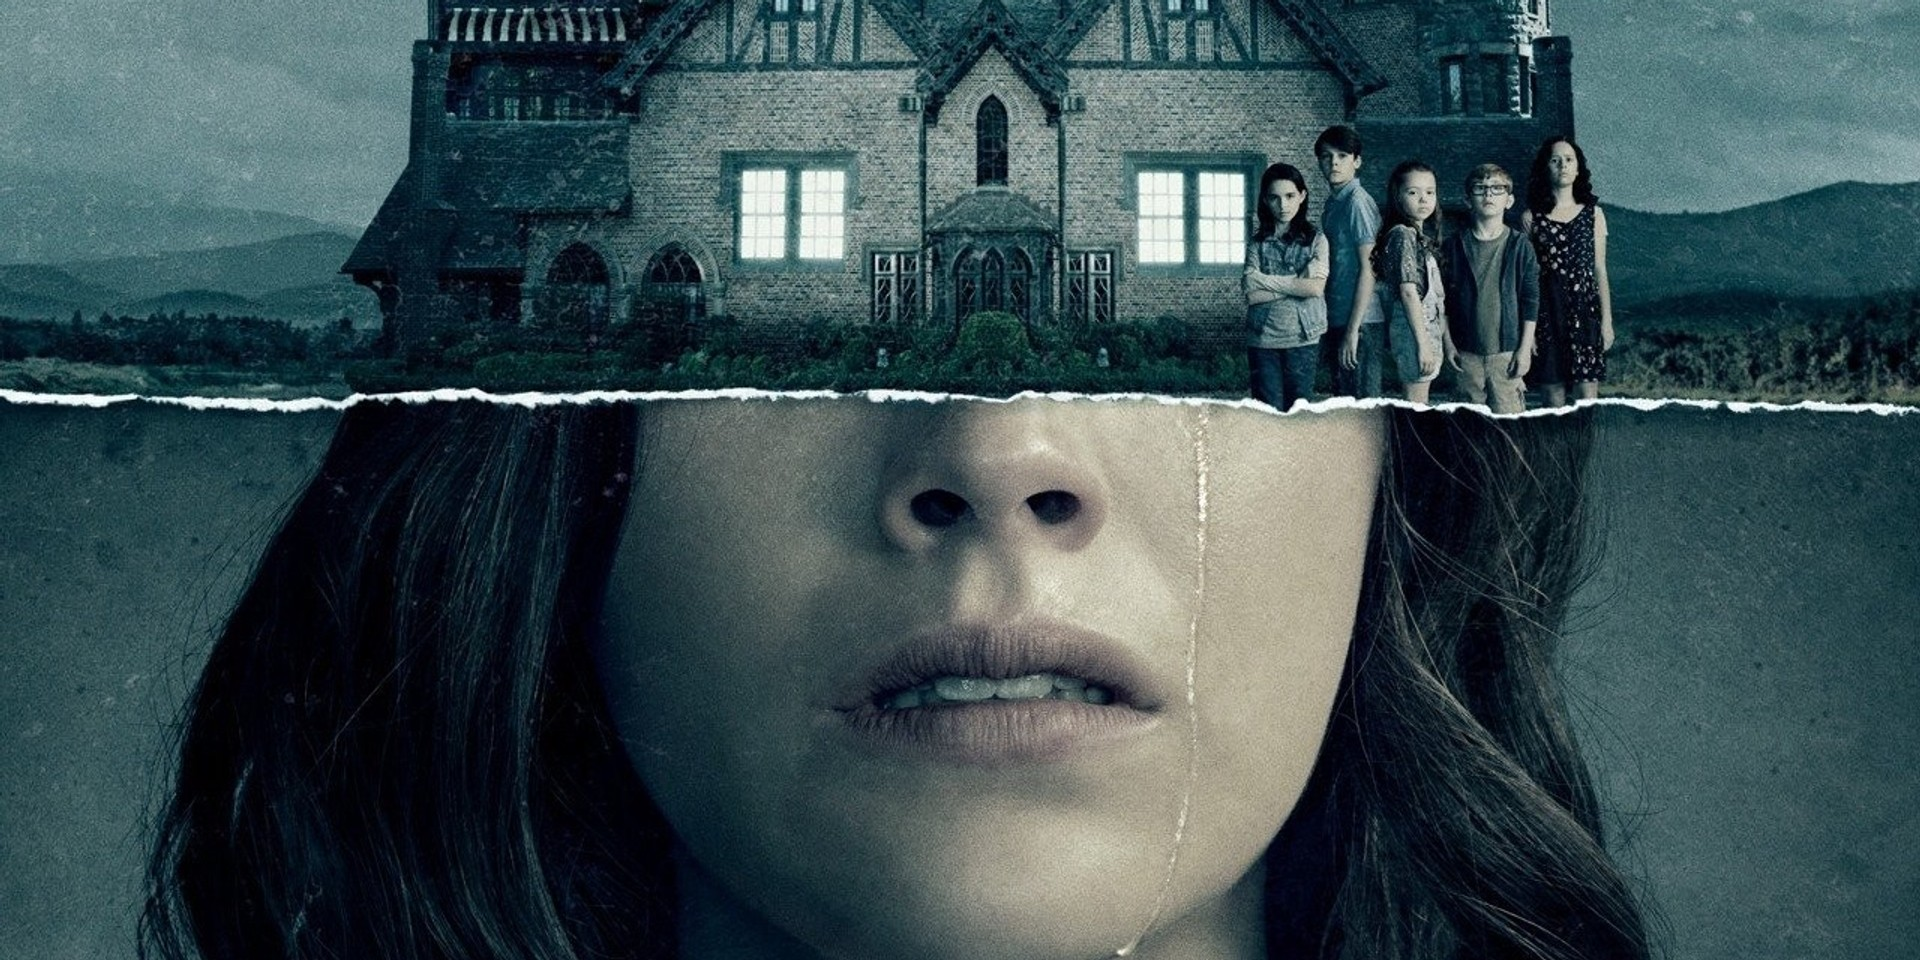 Vinyl release announced for Netflix's 'The Haunting of Hill House' soundtrack